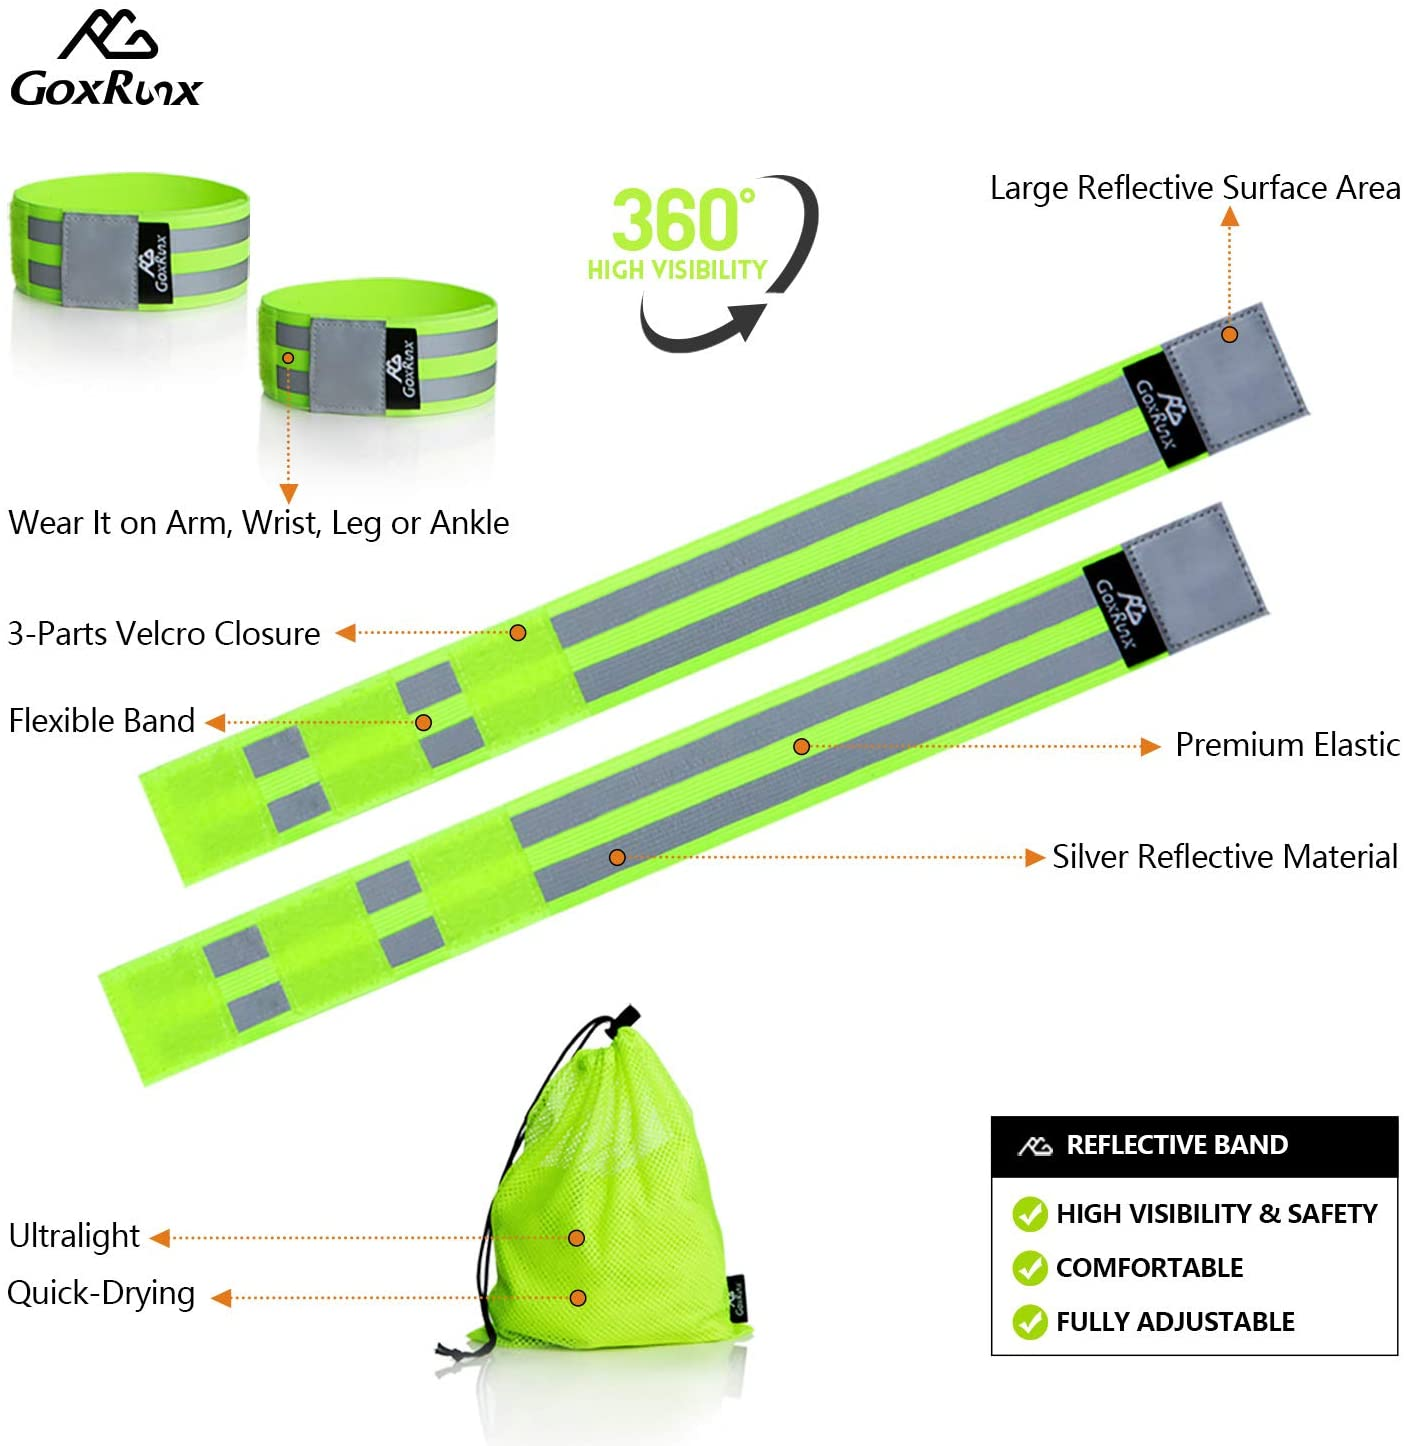 GoxRunx Reflective Bands Running Gear 6 Pack-Adjustable Reflective Armband Arm Wrist Ankle Leg Bands Reflectors -Reflective Tape Straps for Clothing Night Running Cycling Walking -Slap Bracelets : Sports & Outdoors